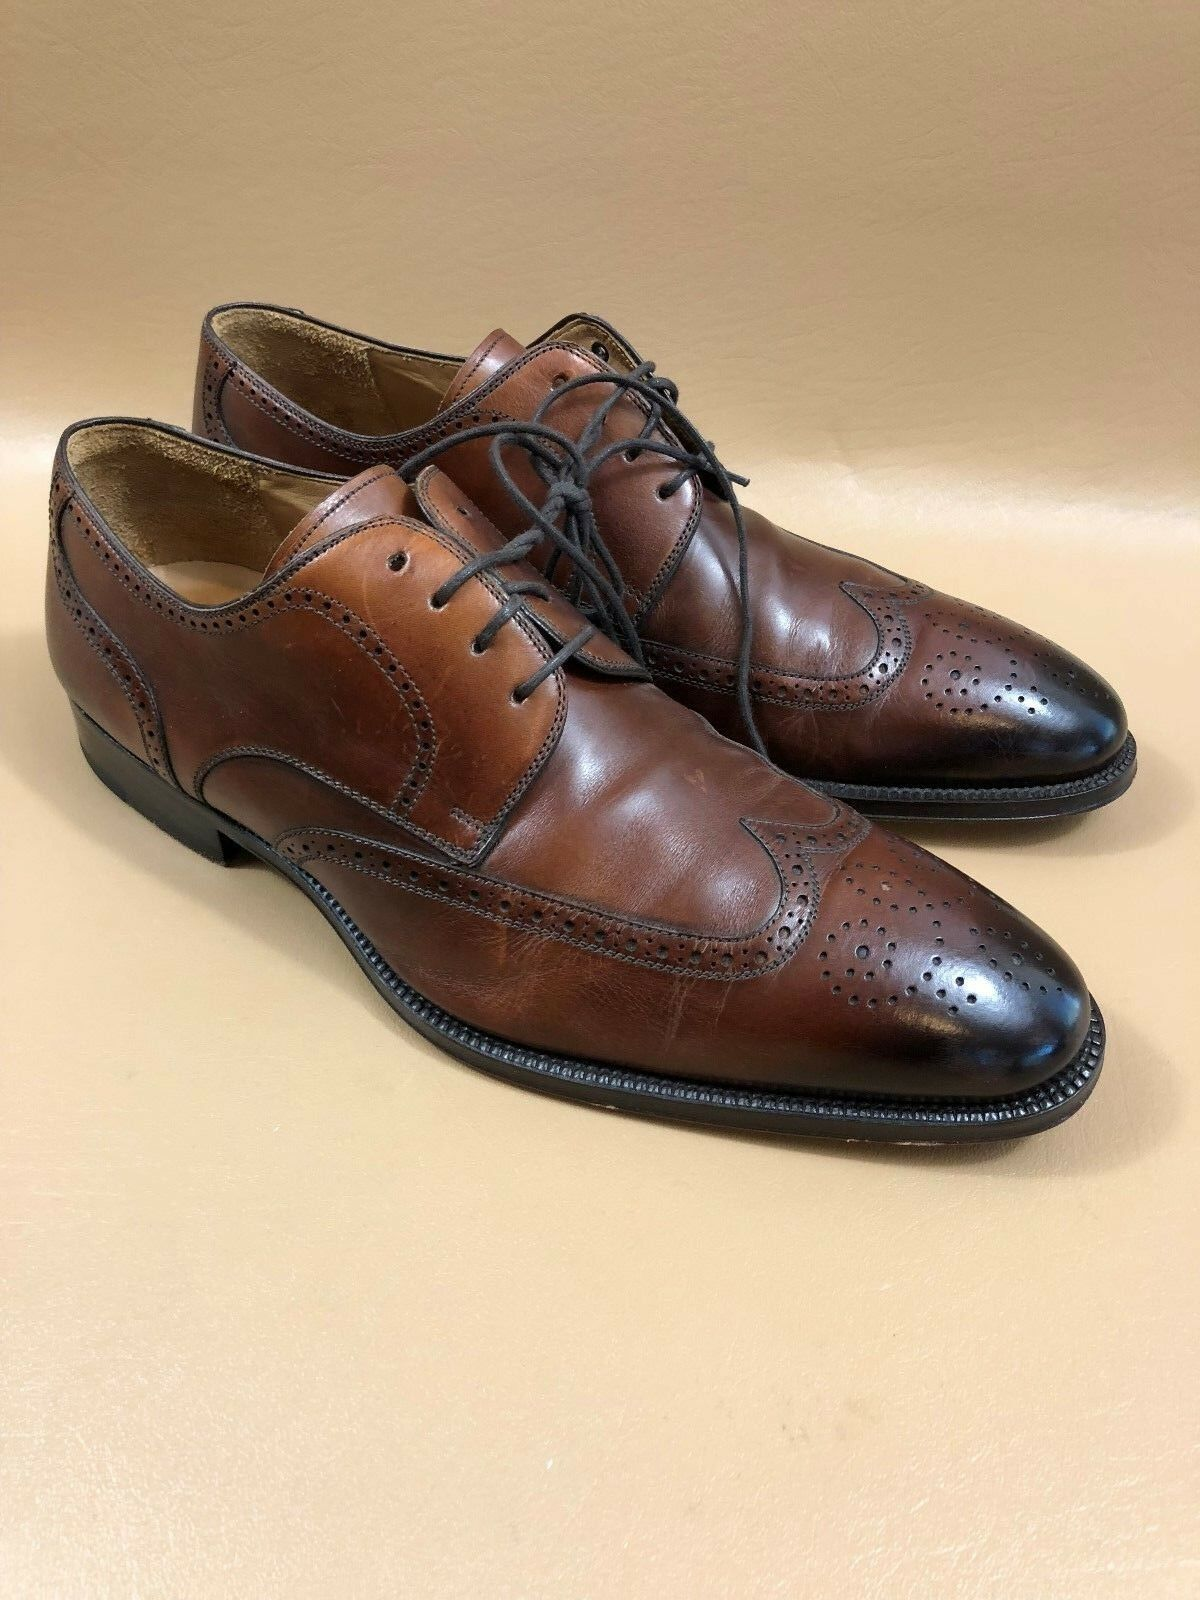 #84  Magnanni Brown Pelle Wing Tip Oxfords Size 10.5